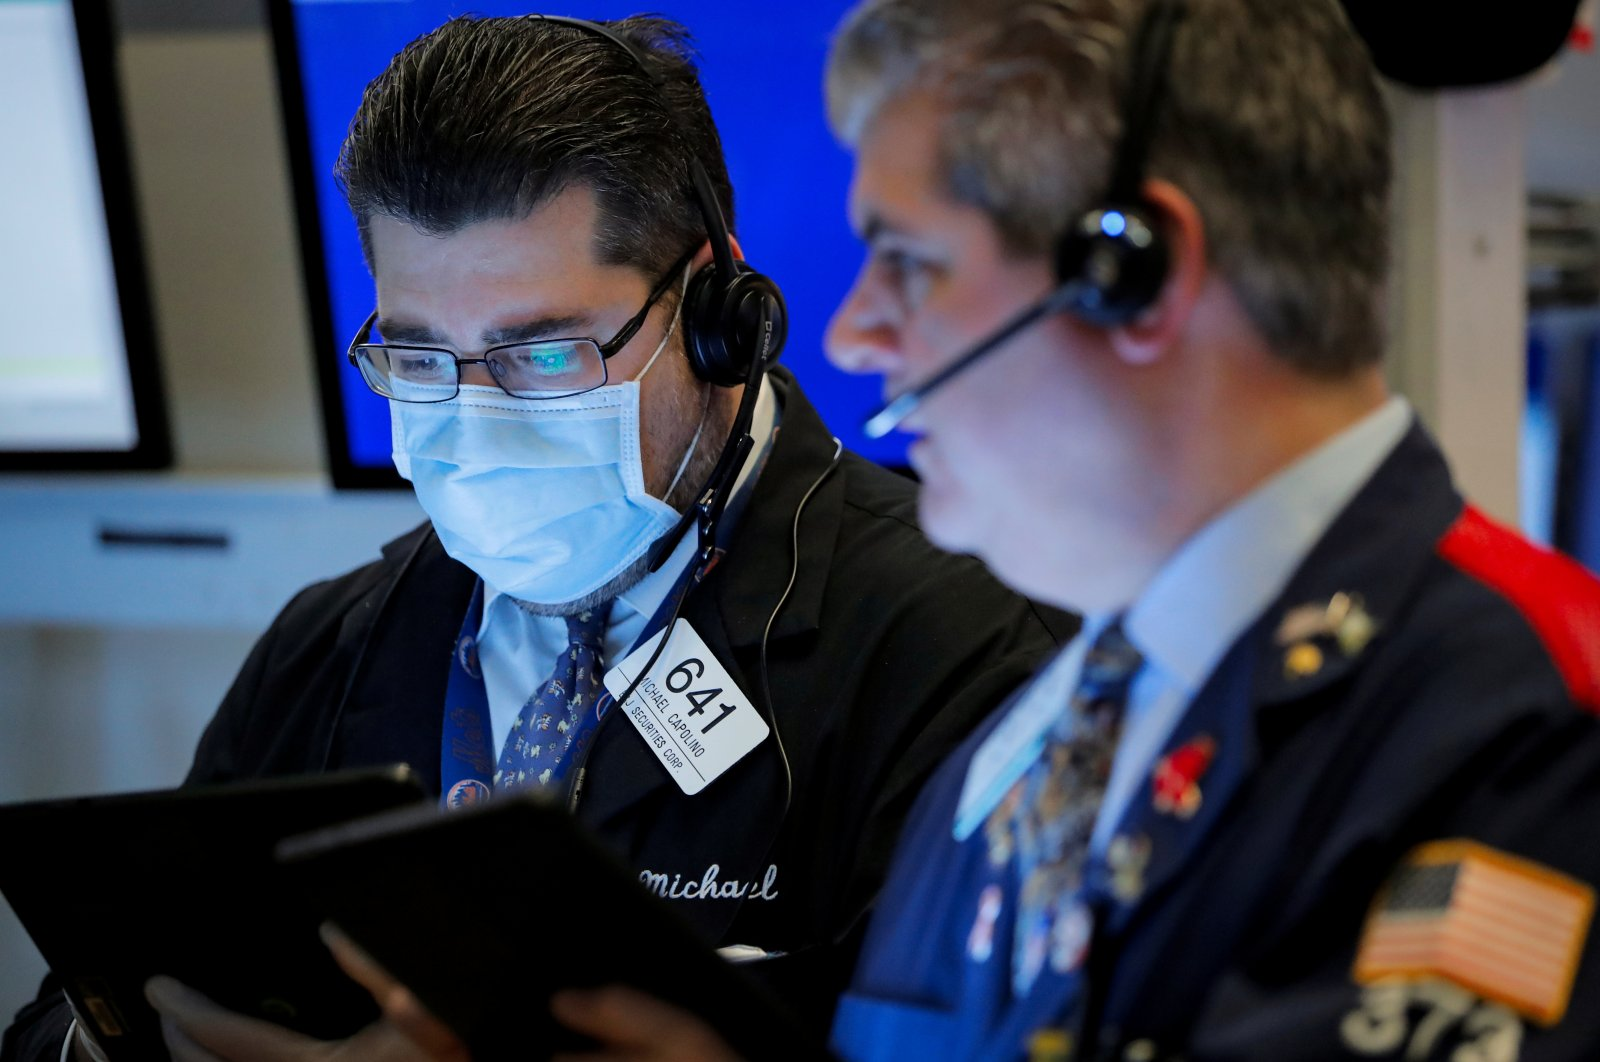 Traders work on the floor of the New York Stock Exchange in New York, U.S., Friday, March 20, 2020. (Reuters Photo)